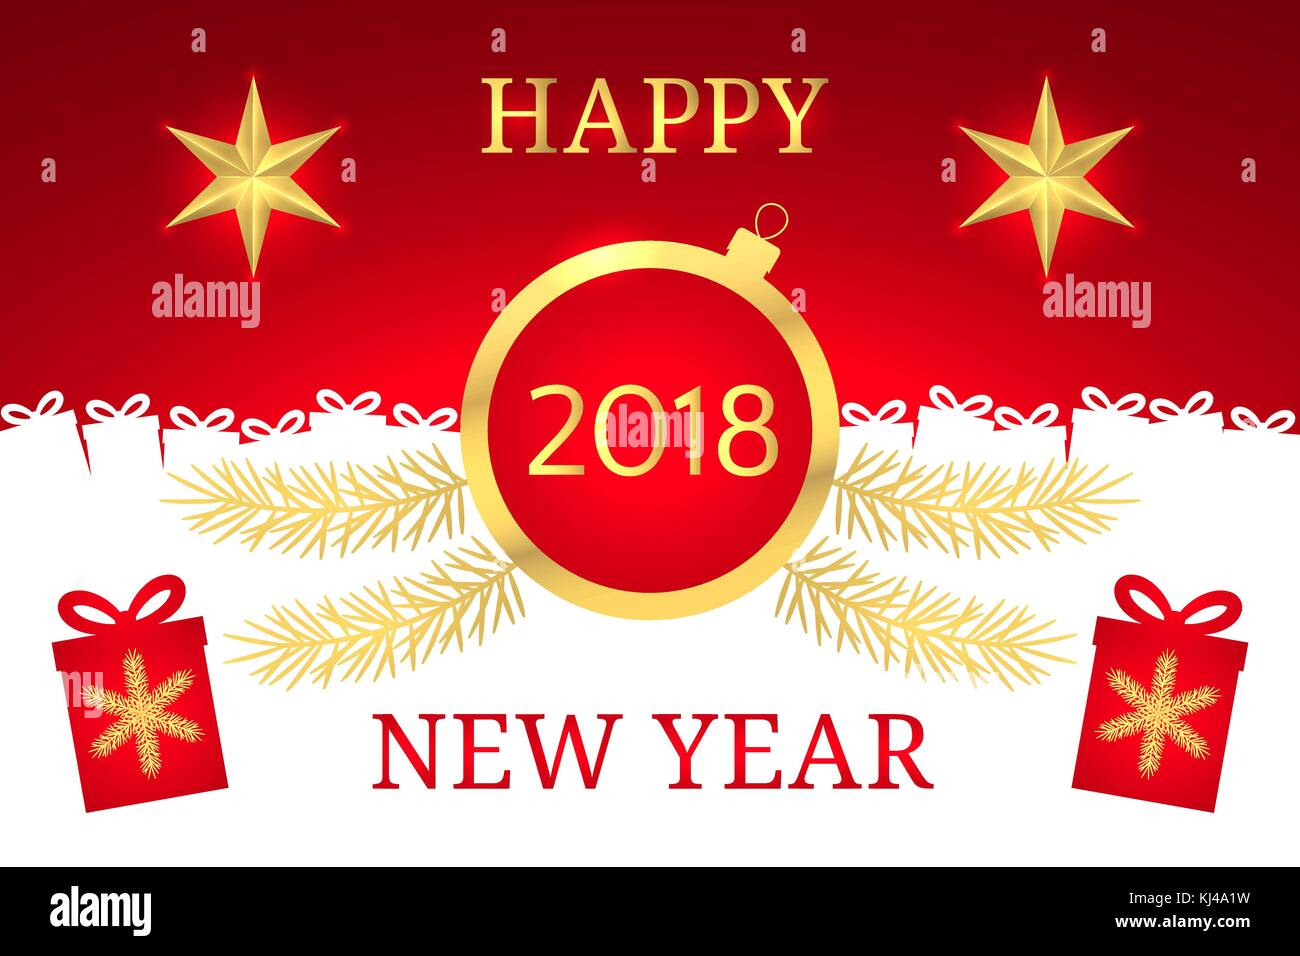 Happy New Year 2018. Vector Banner with New Year Greeting in Golden and Red Color. Golden Shining Star, Toy and - Stock Vector